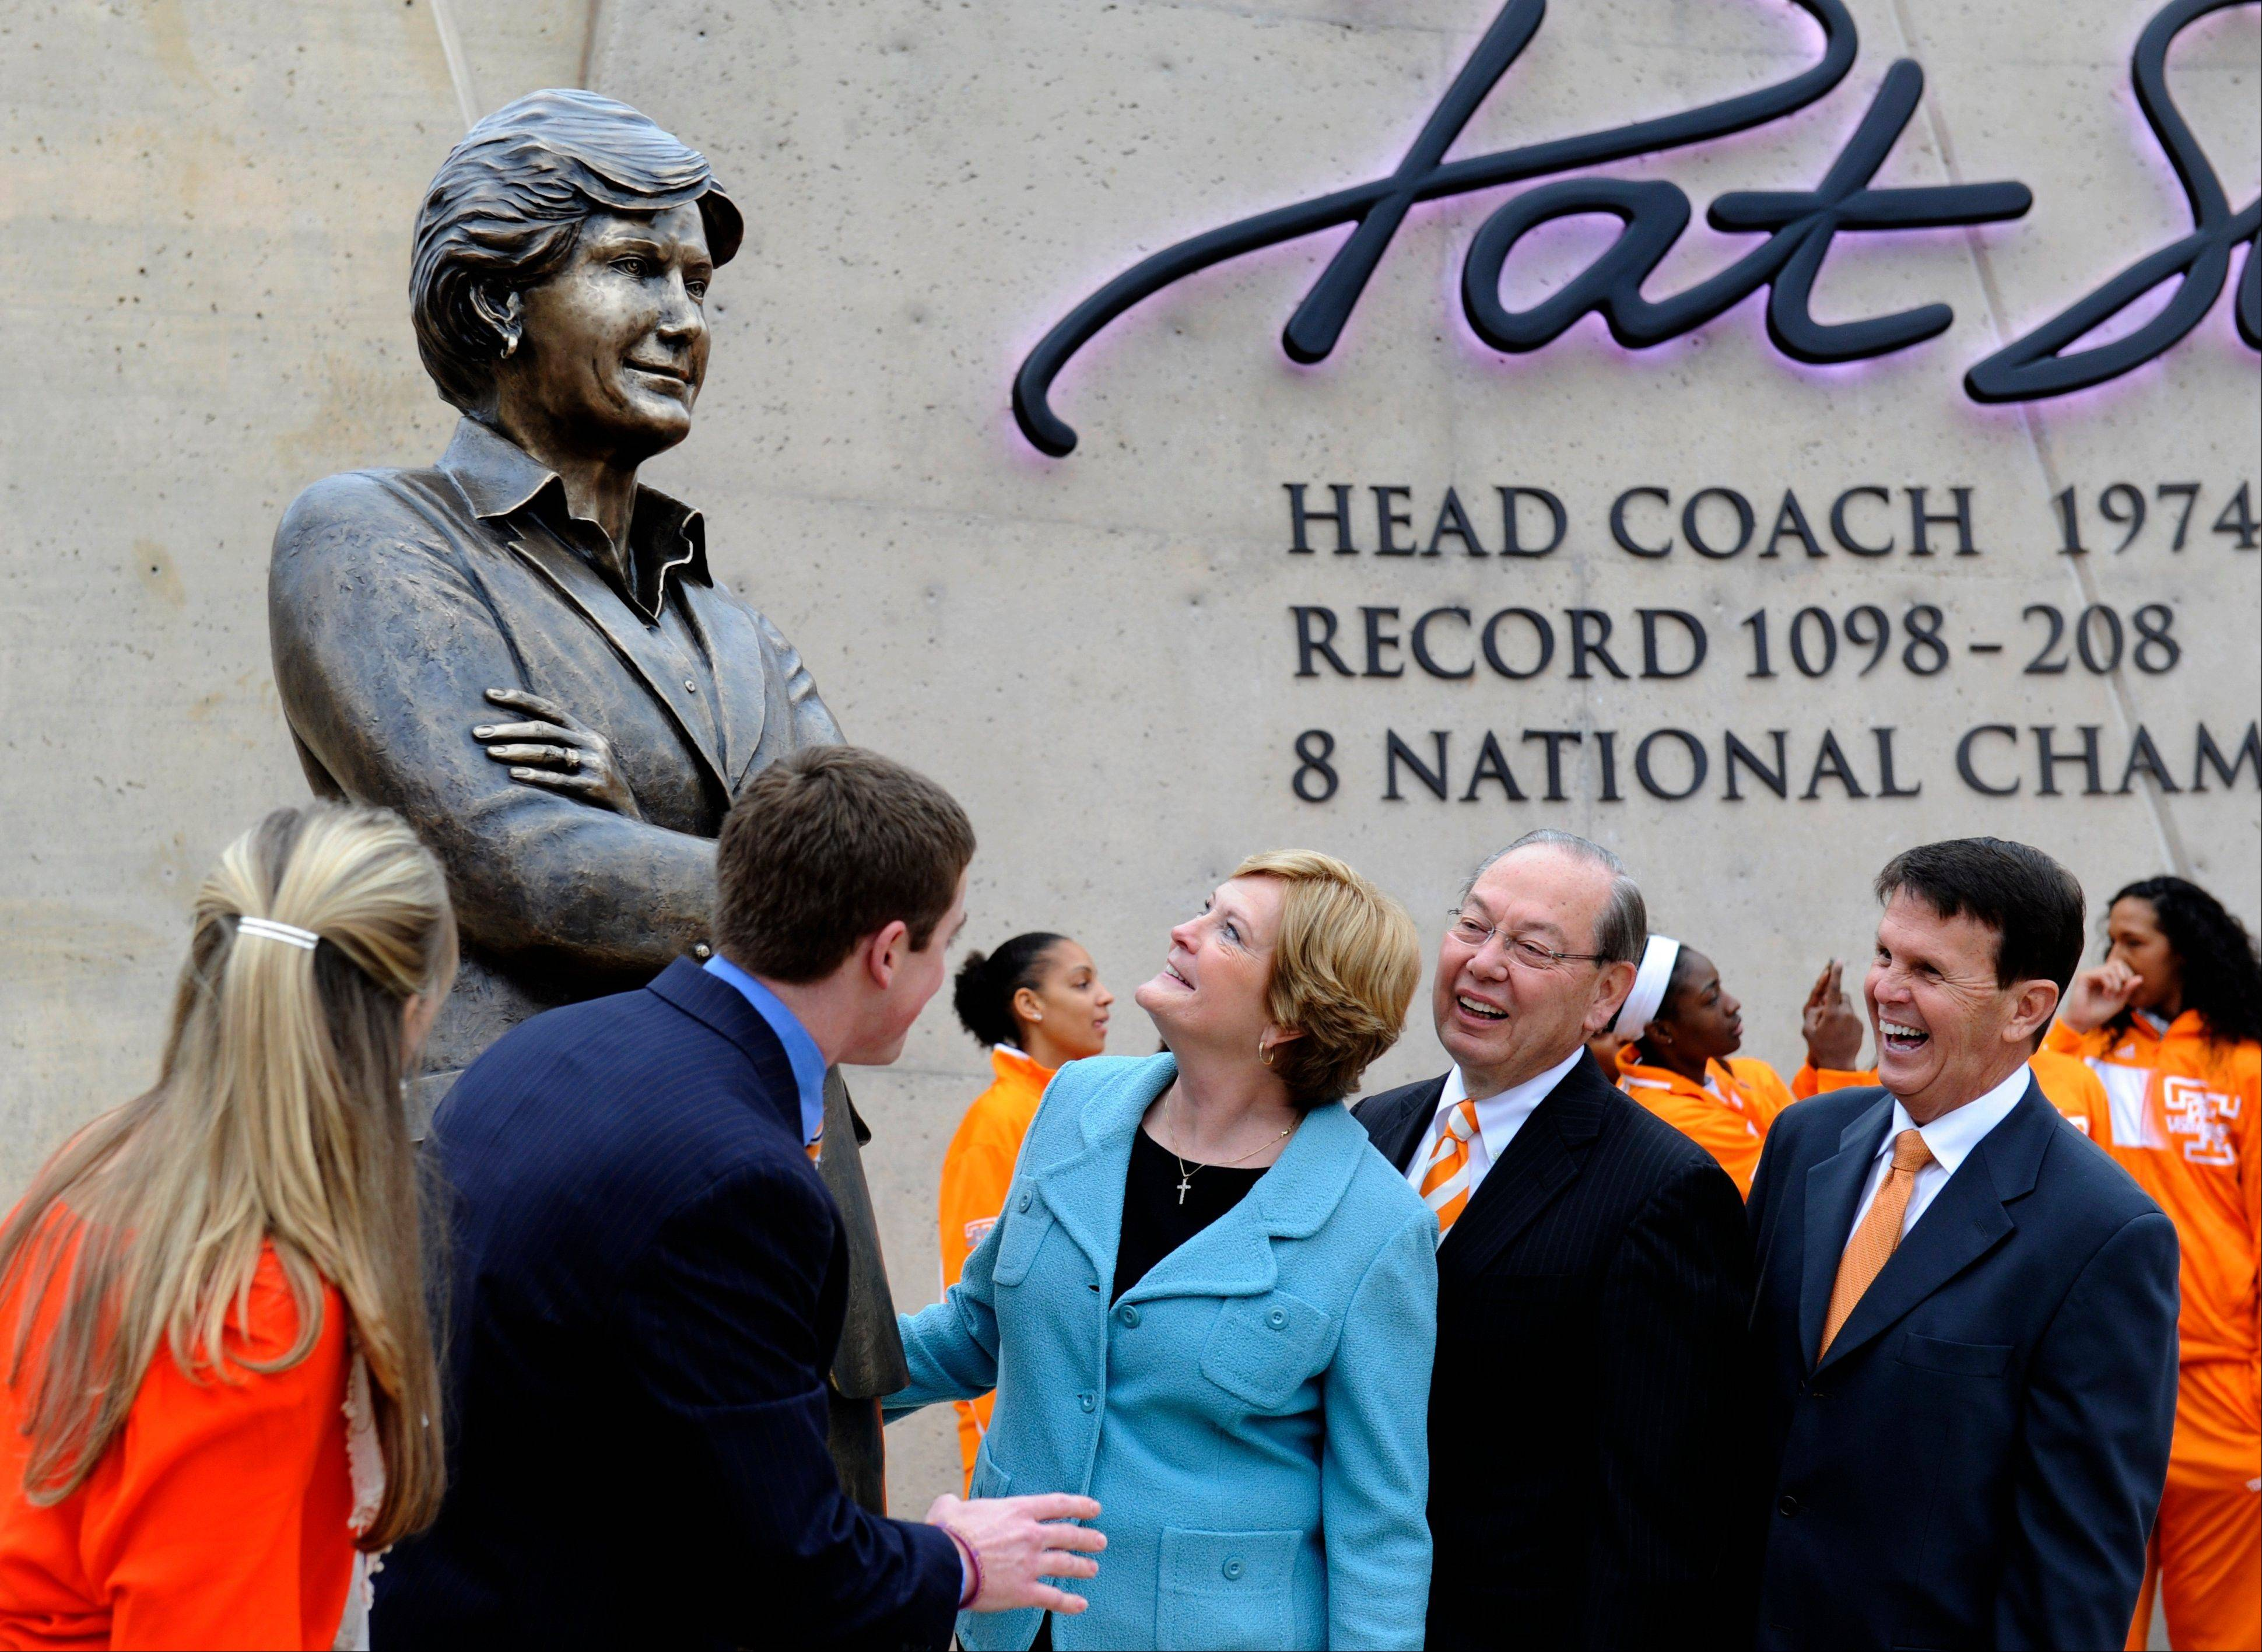 Tennessee women�s basketball coach emeritus Pat Summitt, center, looks at the statue unveiled in her honor on Friday in Knoxville, Tenn. With Summitt are, from left, her daughter-in-law, AnDe Summitt, her son, Tyler Summitt, UT Chancellor Jimmy Cheek, and director of athletics Dave Hart.